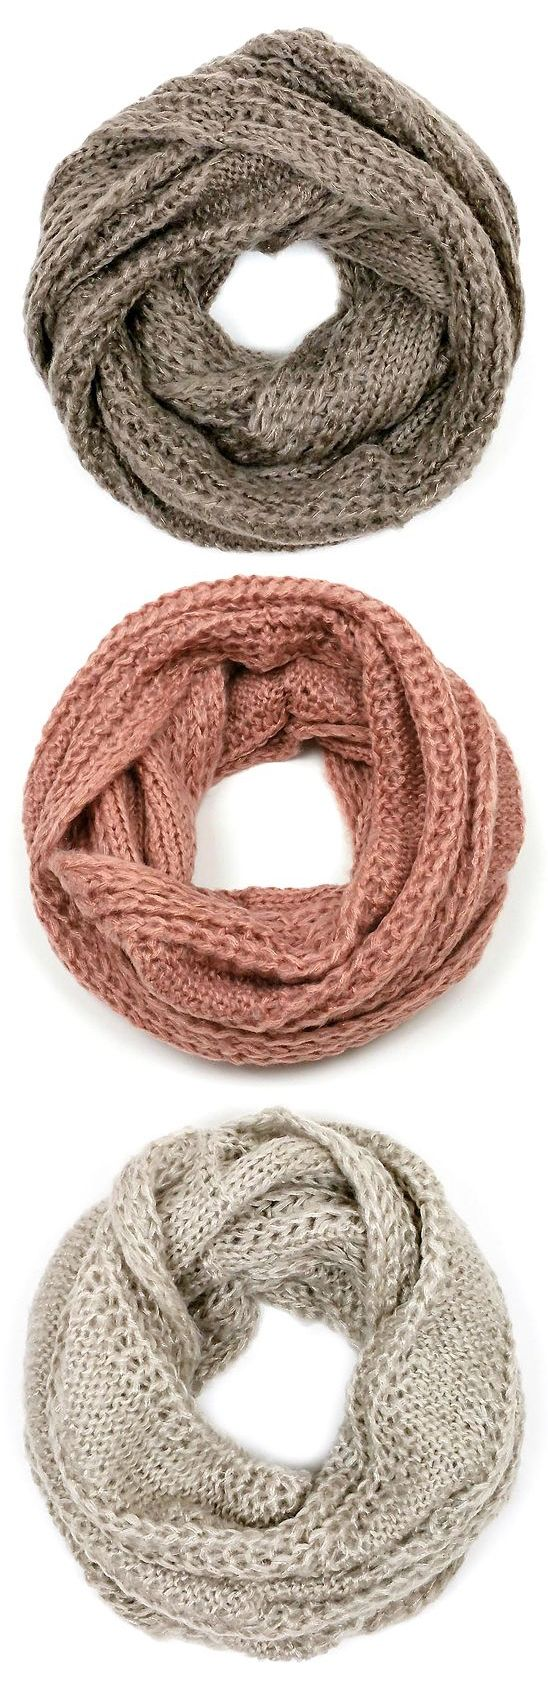 Scarves in Neutral Colors - so versatile!